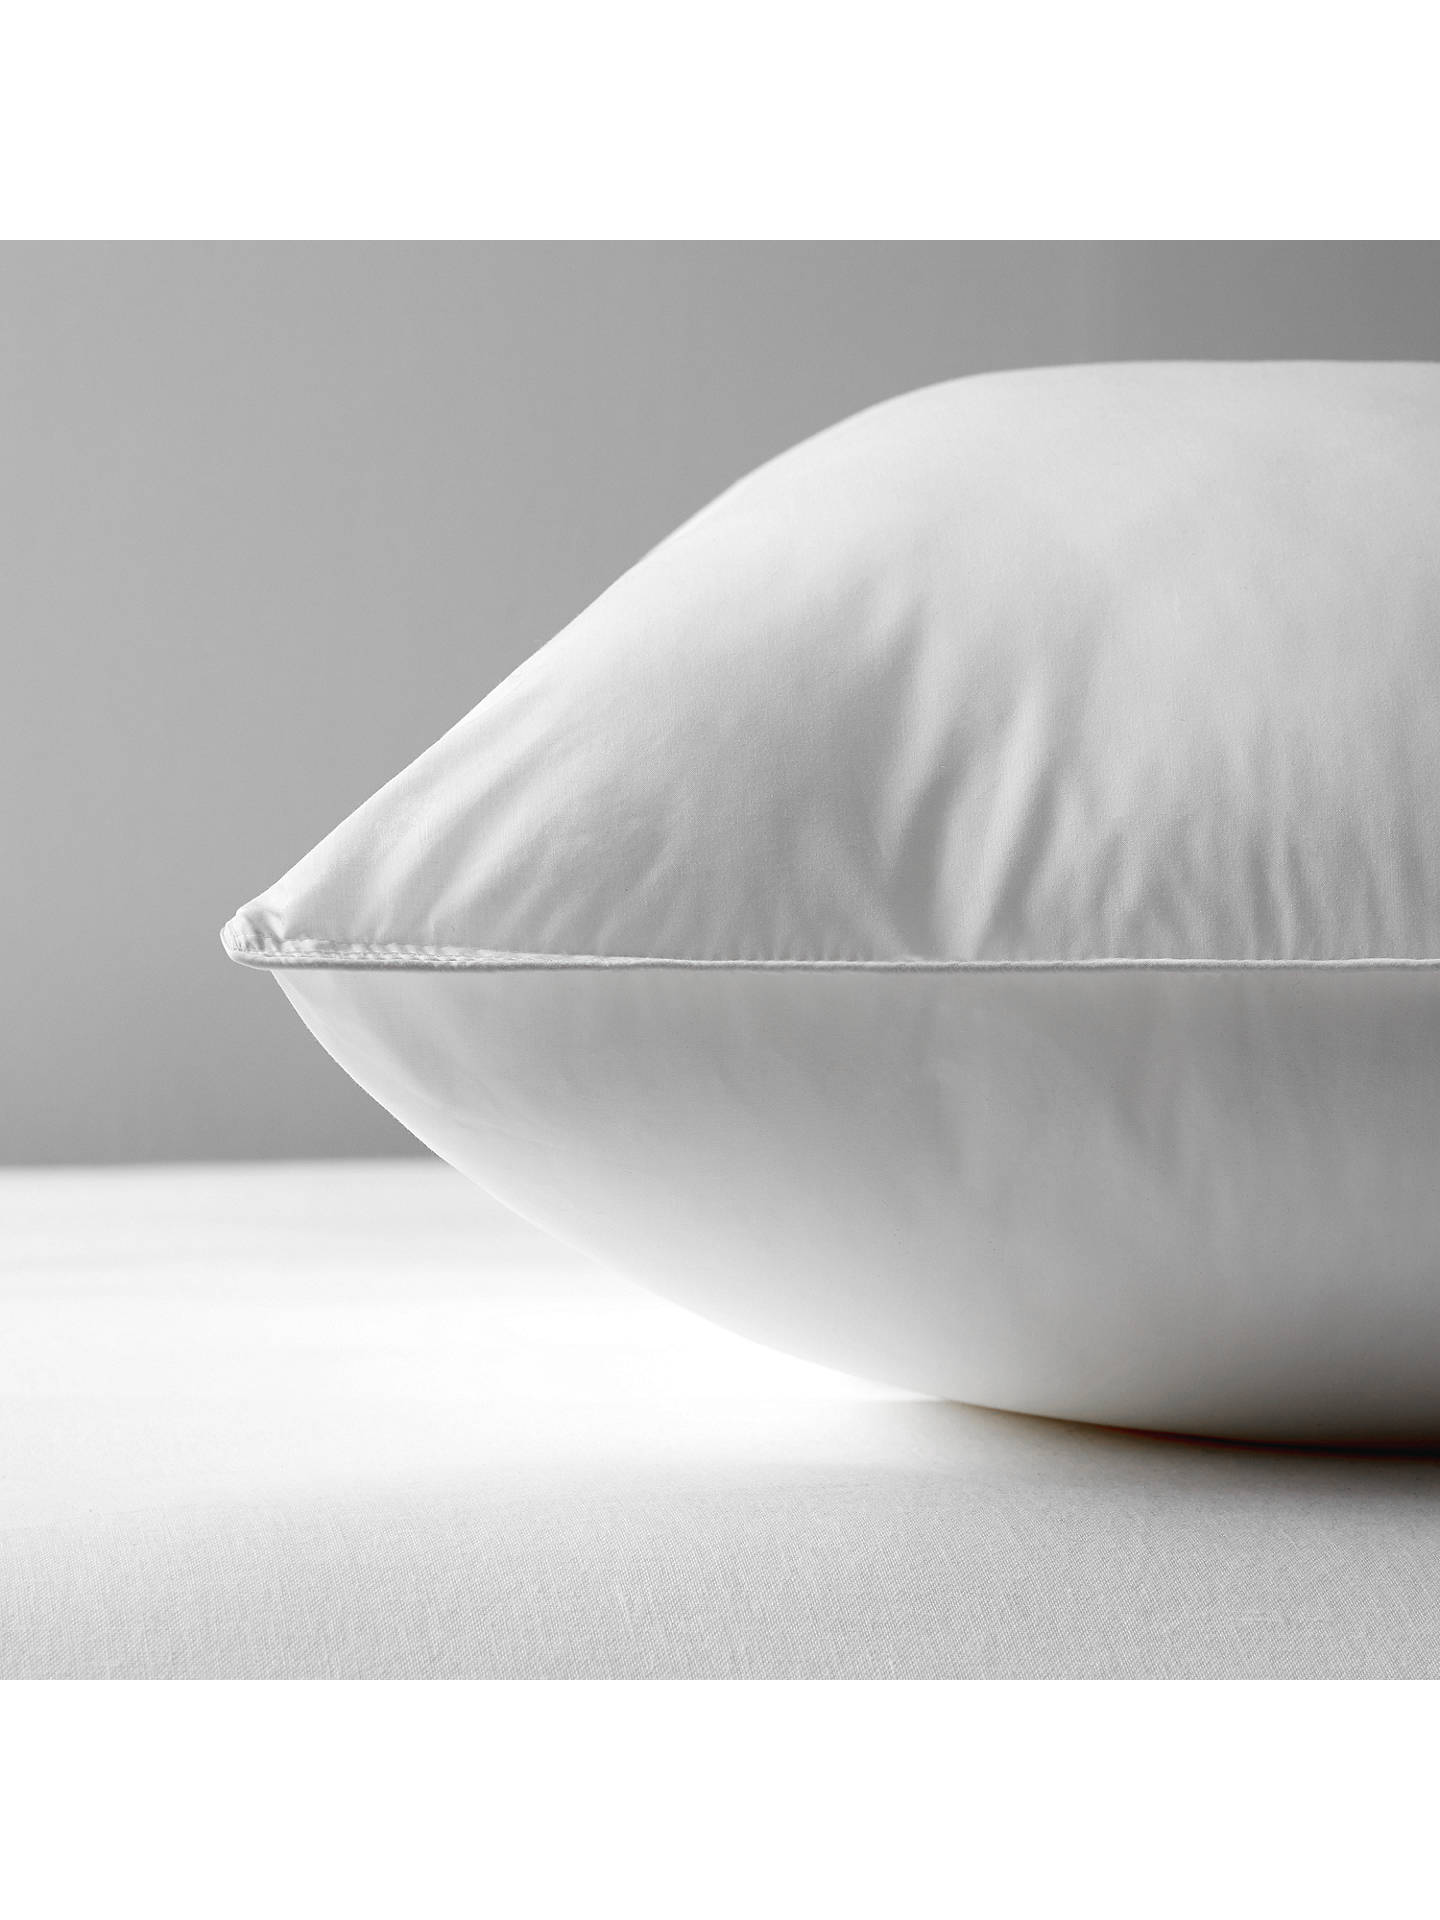 BuyJohn Lewis & Partners Synthetic Soft Like Down Square Pillow, Medium/Firm Online at johnlewis.com